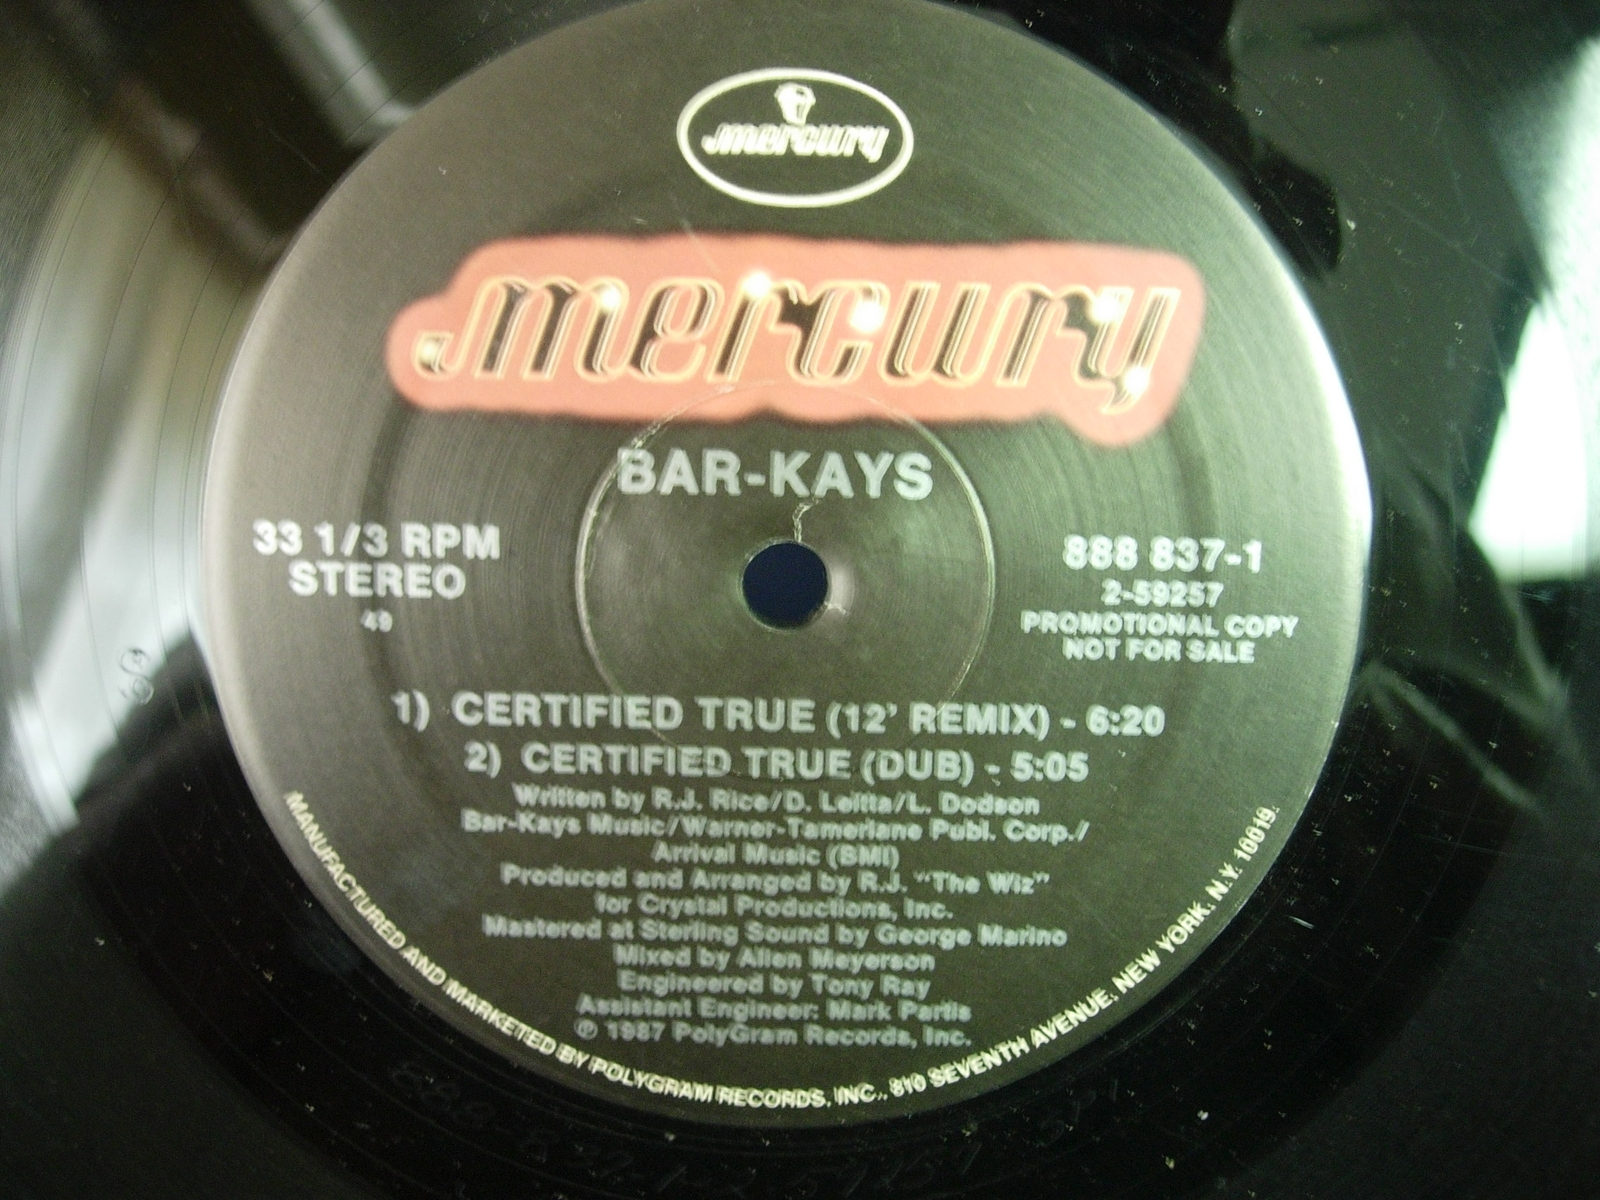 Bar Kays - Certified True - Mercury 888 837-1 - PROMO